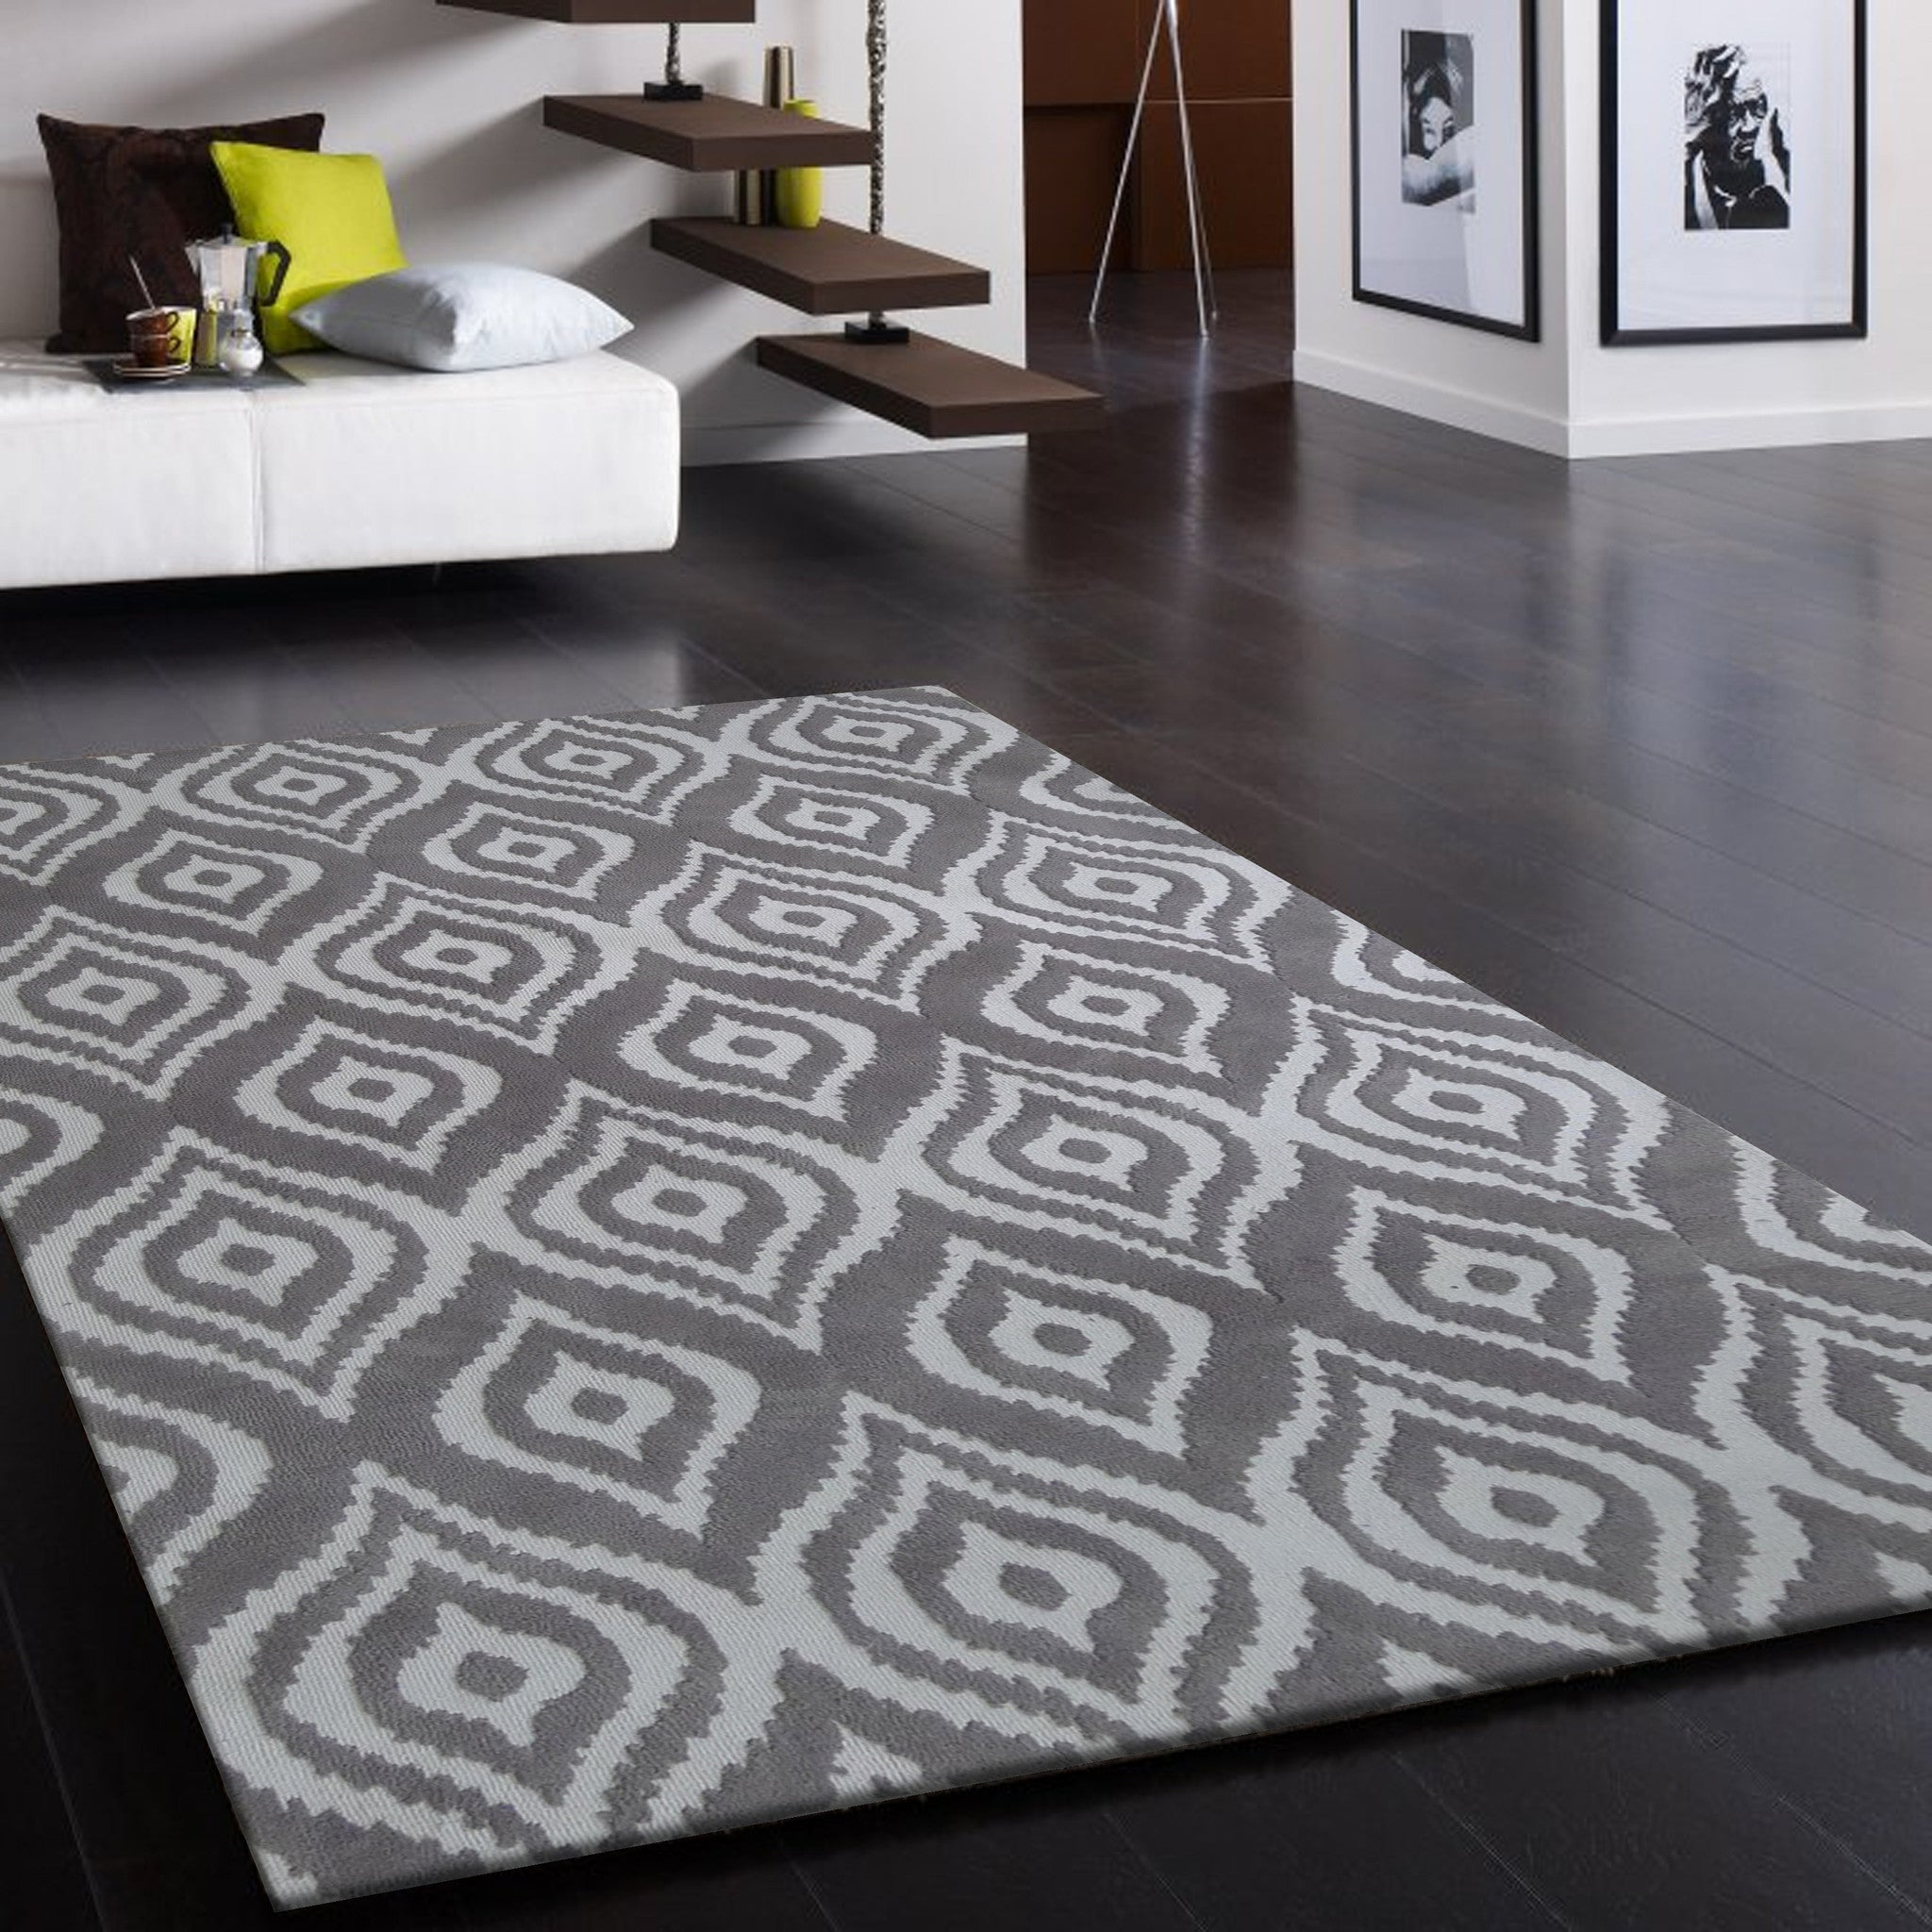 contemporary vibrant drizzle grey bedroom area rug rug addiction contemporary vibrant drizzle grey bedroom area rug area rug rug addiction rug addiction